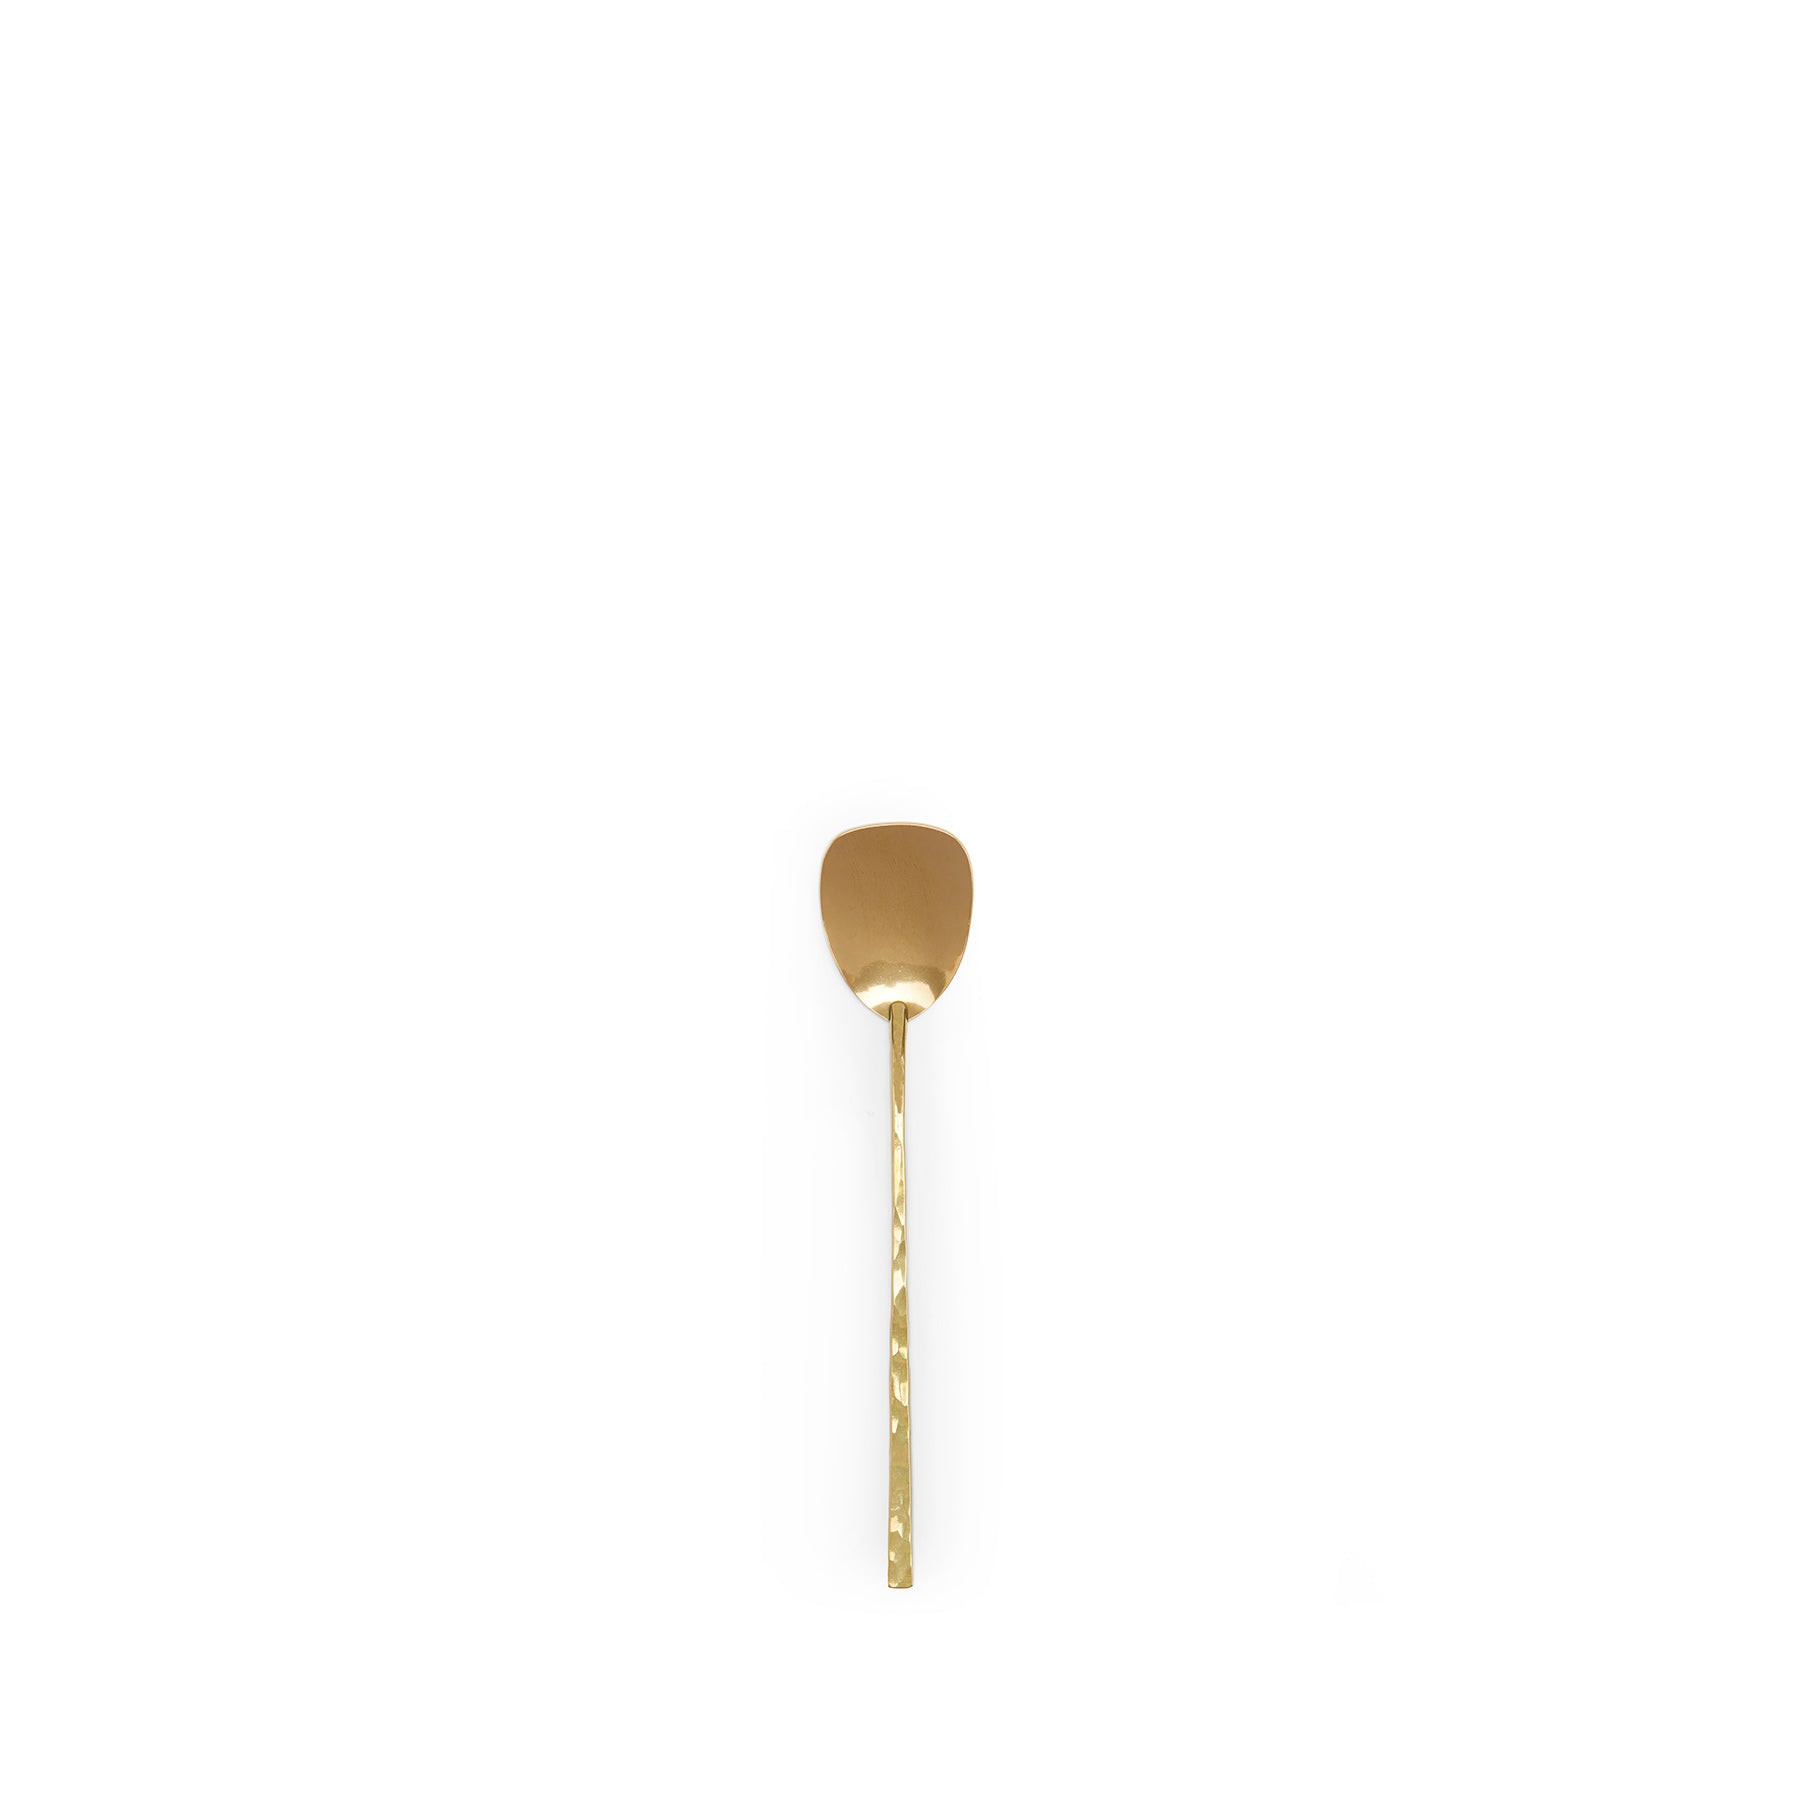 Brass Ice Cream Spoon Zoom Image 1